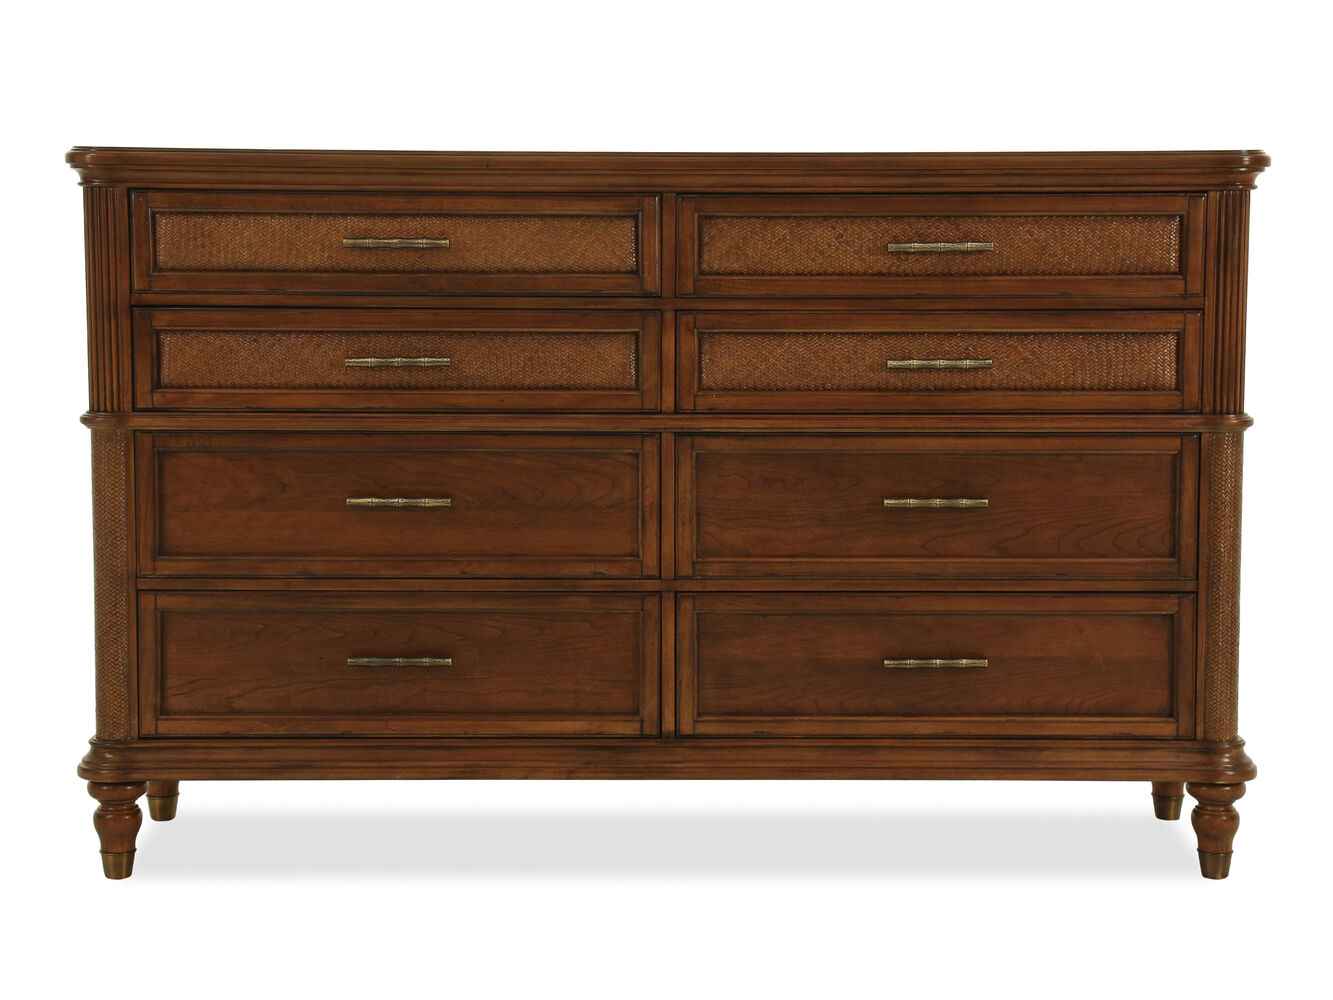 42 Casual Basket Weave Textured Dresser In Brown Mathis Brothers Furniture